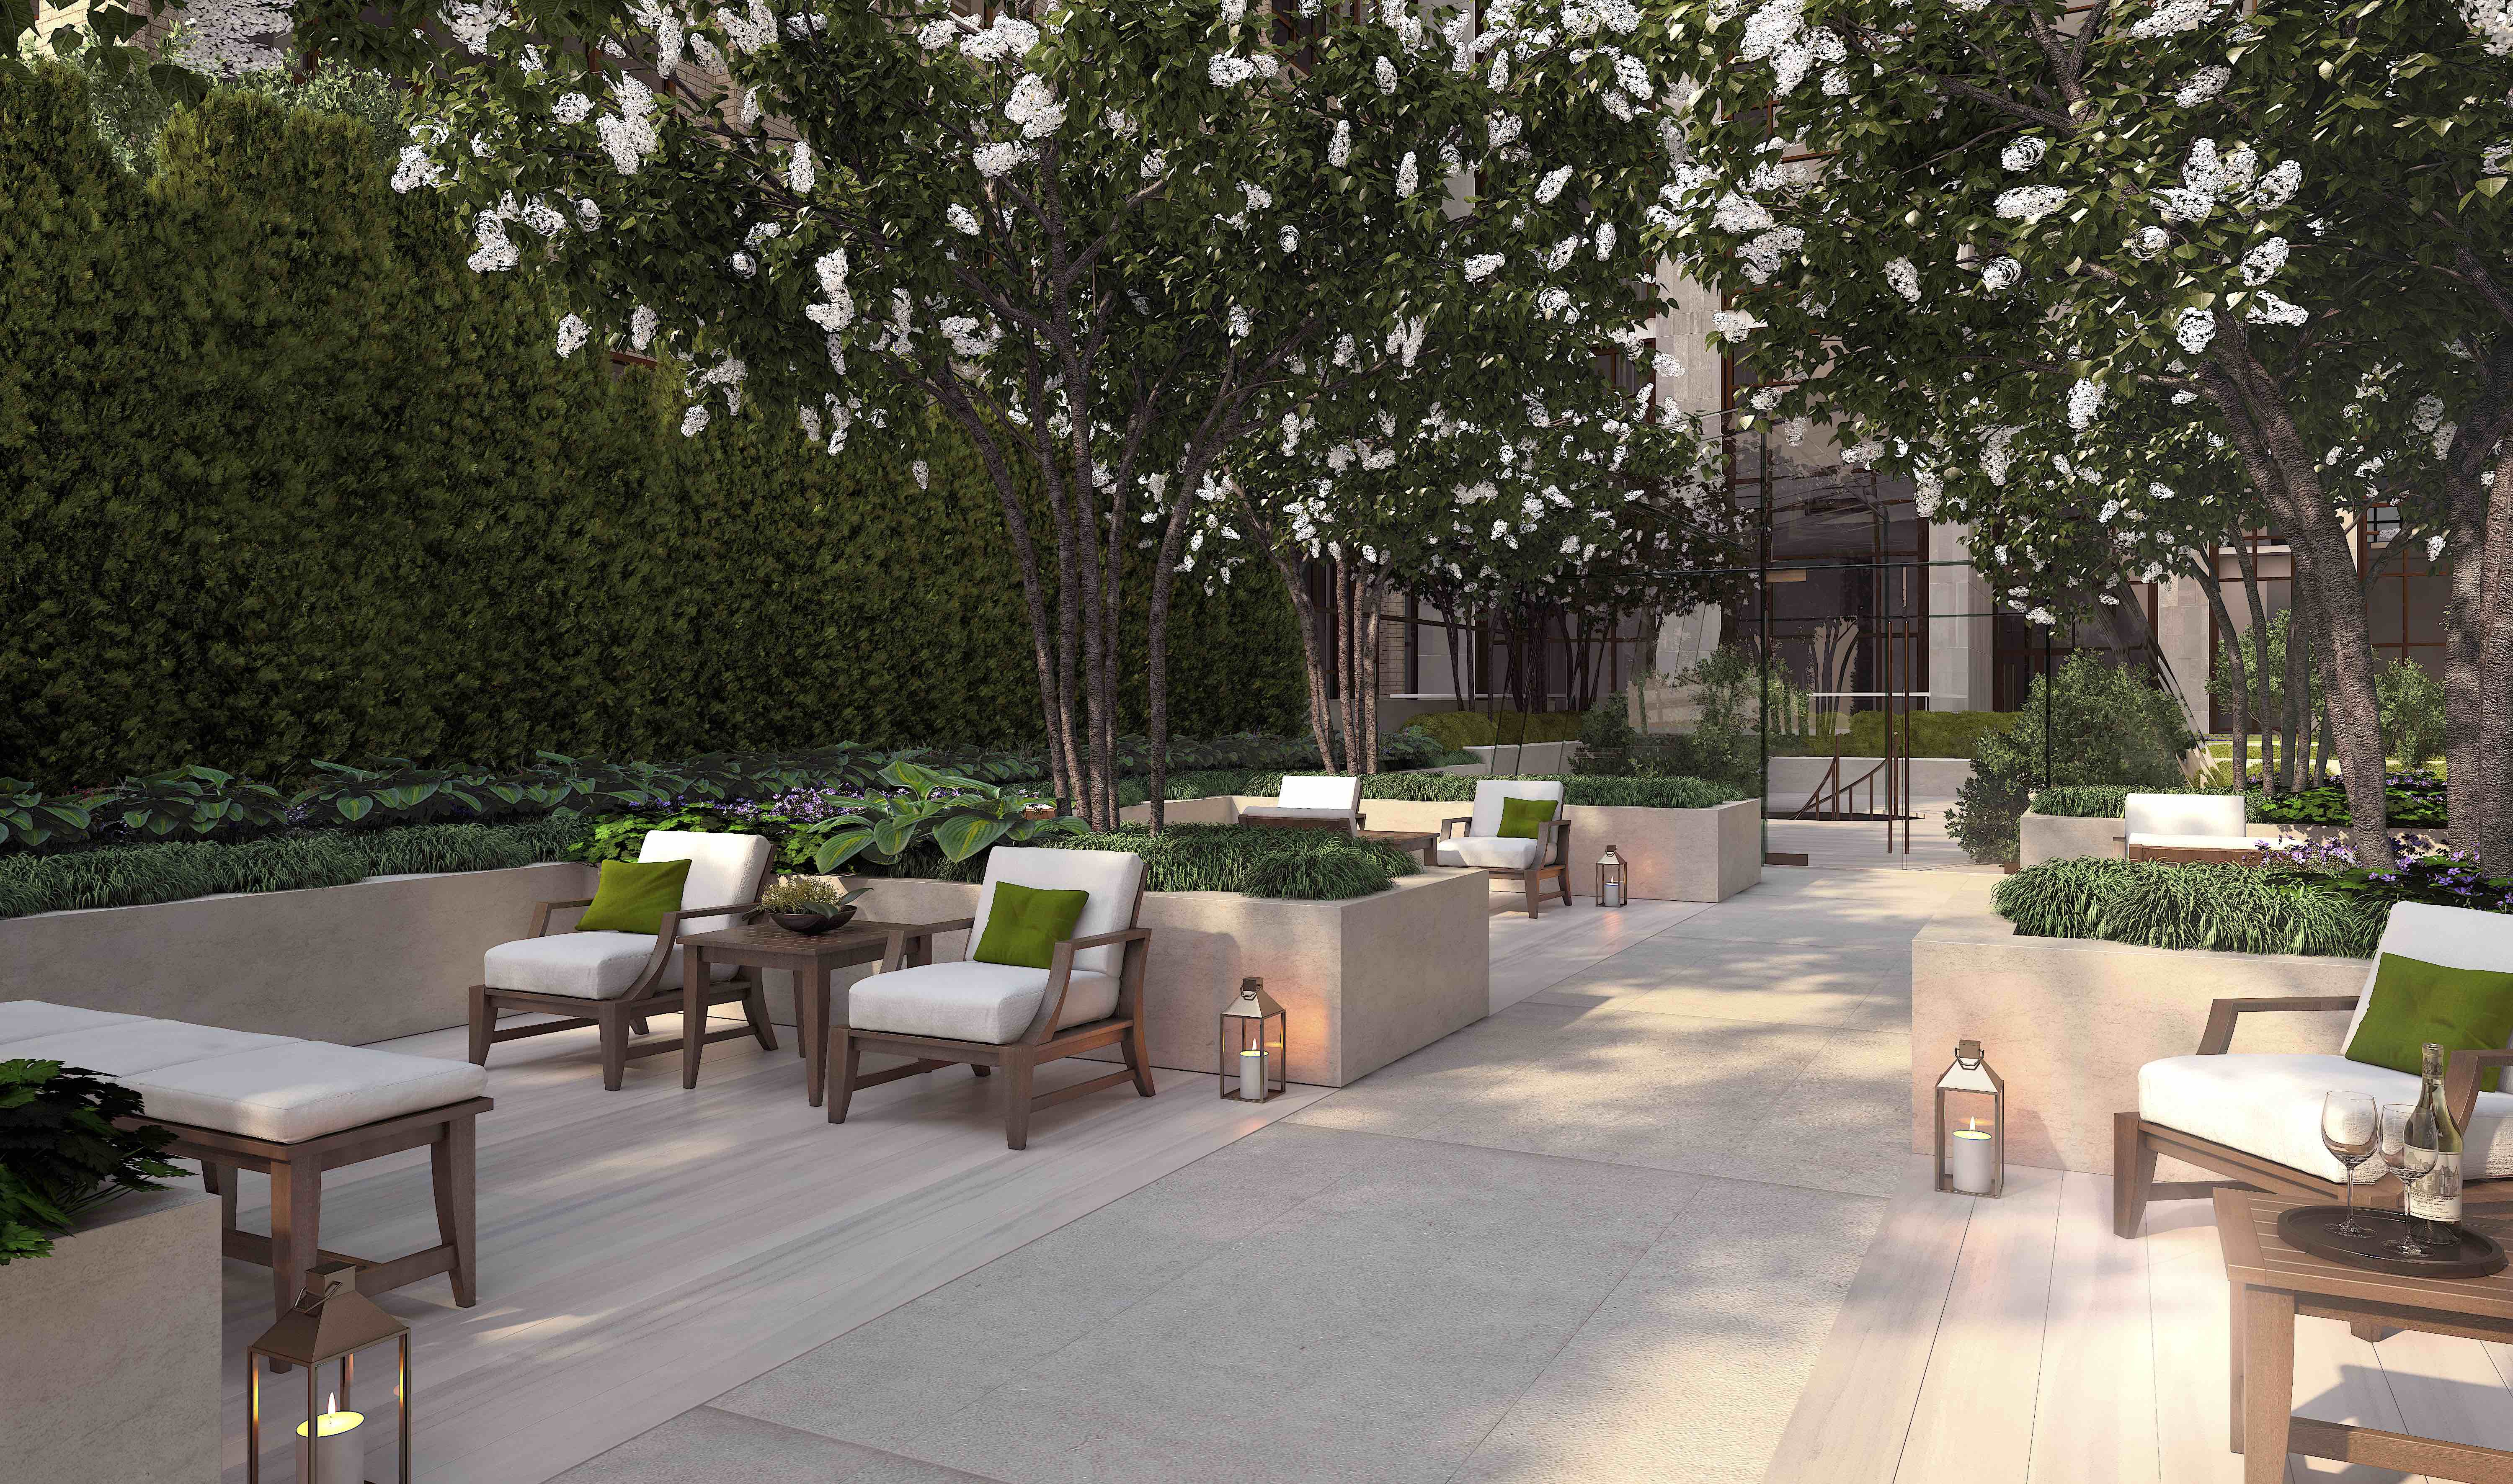 Gramercy Square Courtyard © Gramercy Square